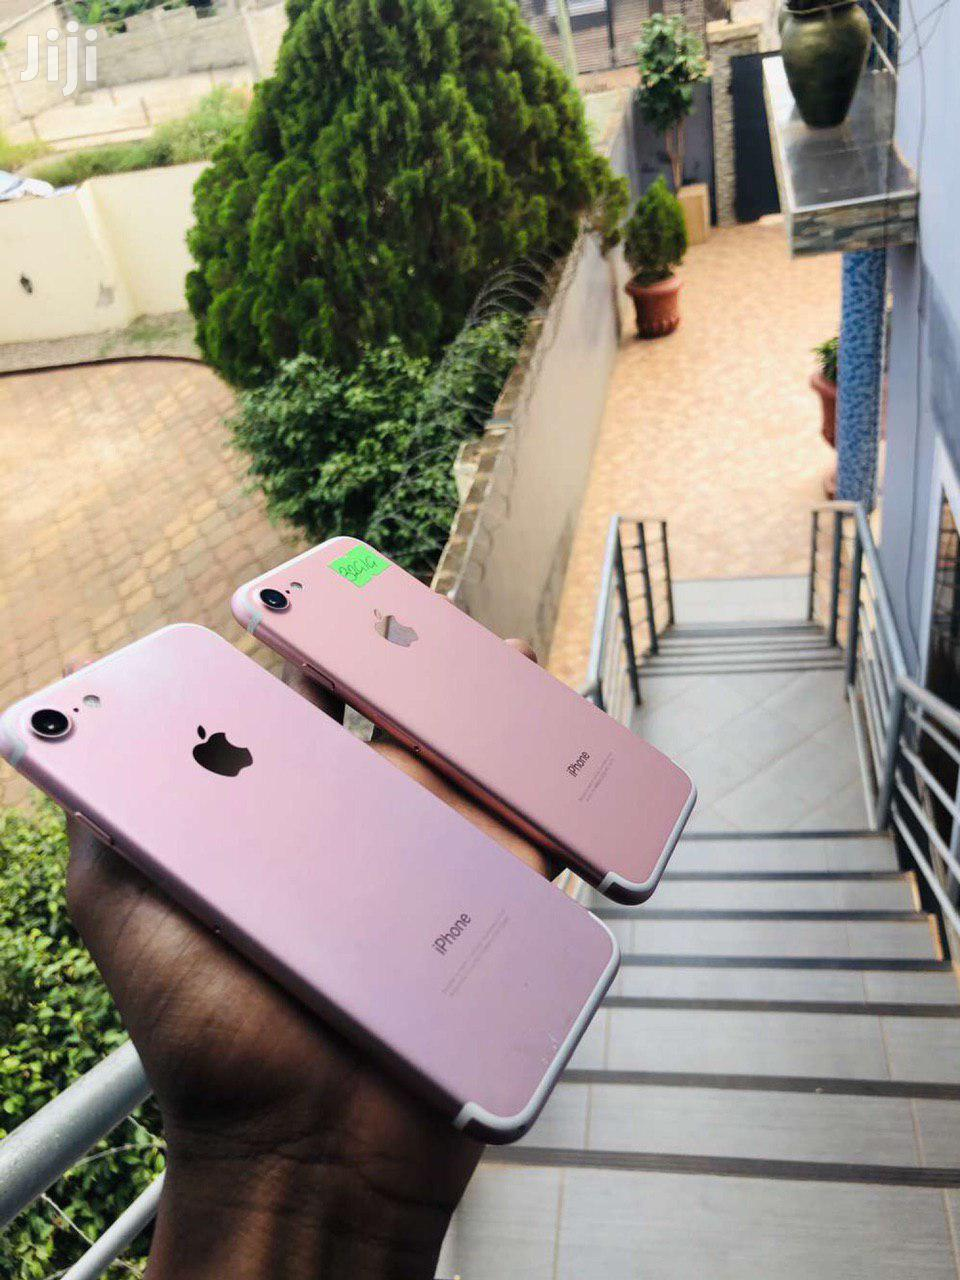 Apple iPhone 7 32 GB Gold | Mobile Phones for sale in Achimota, Greater Accra, Ghana